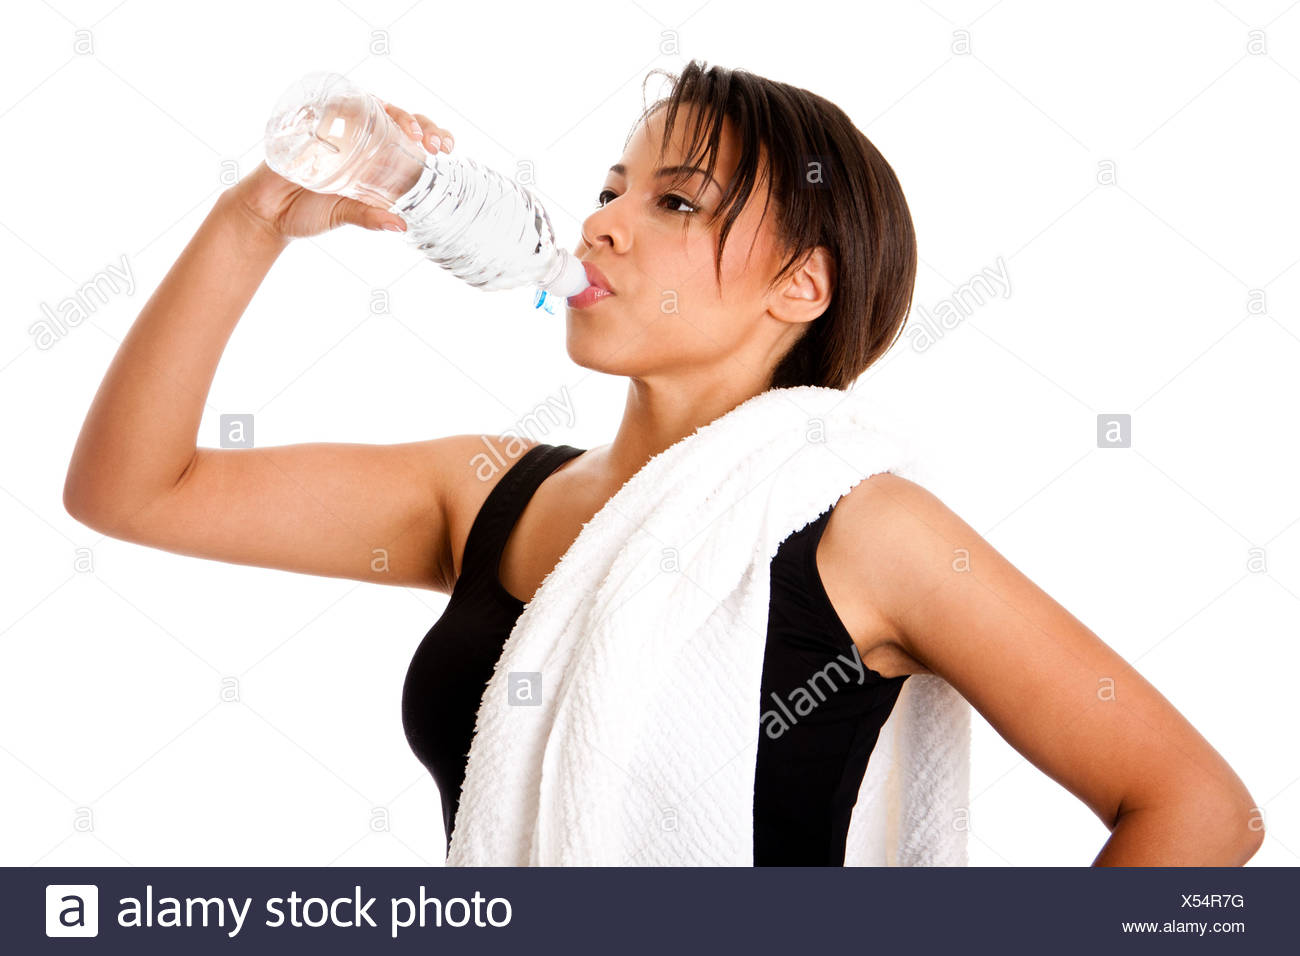 Beautiful attractive young sweaty woman drinking water after exercise workout, rehydrating thirst quenching, isolated. Stock Photo